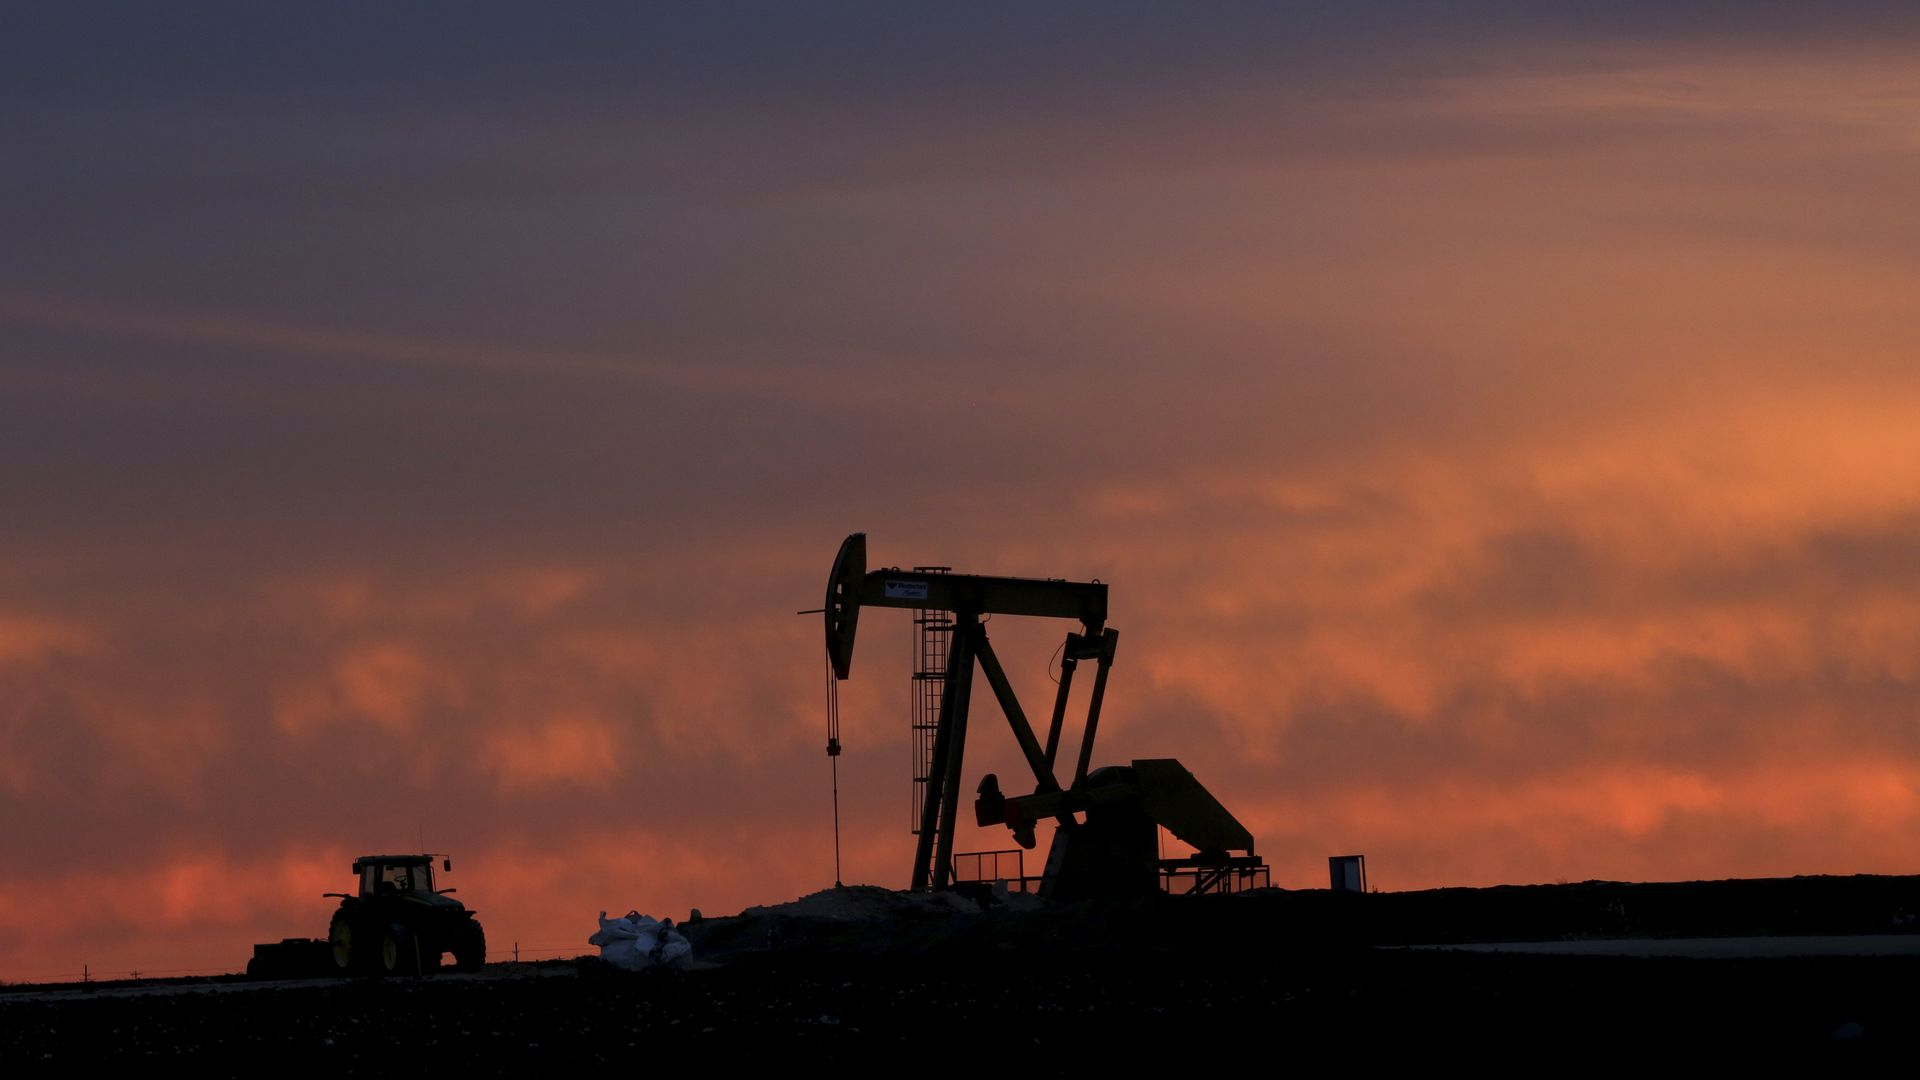 A shale oil pump at sunset